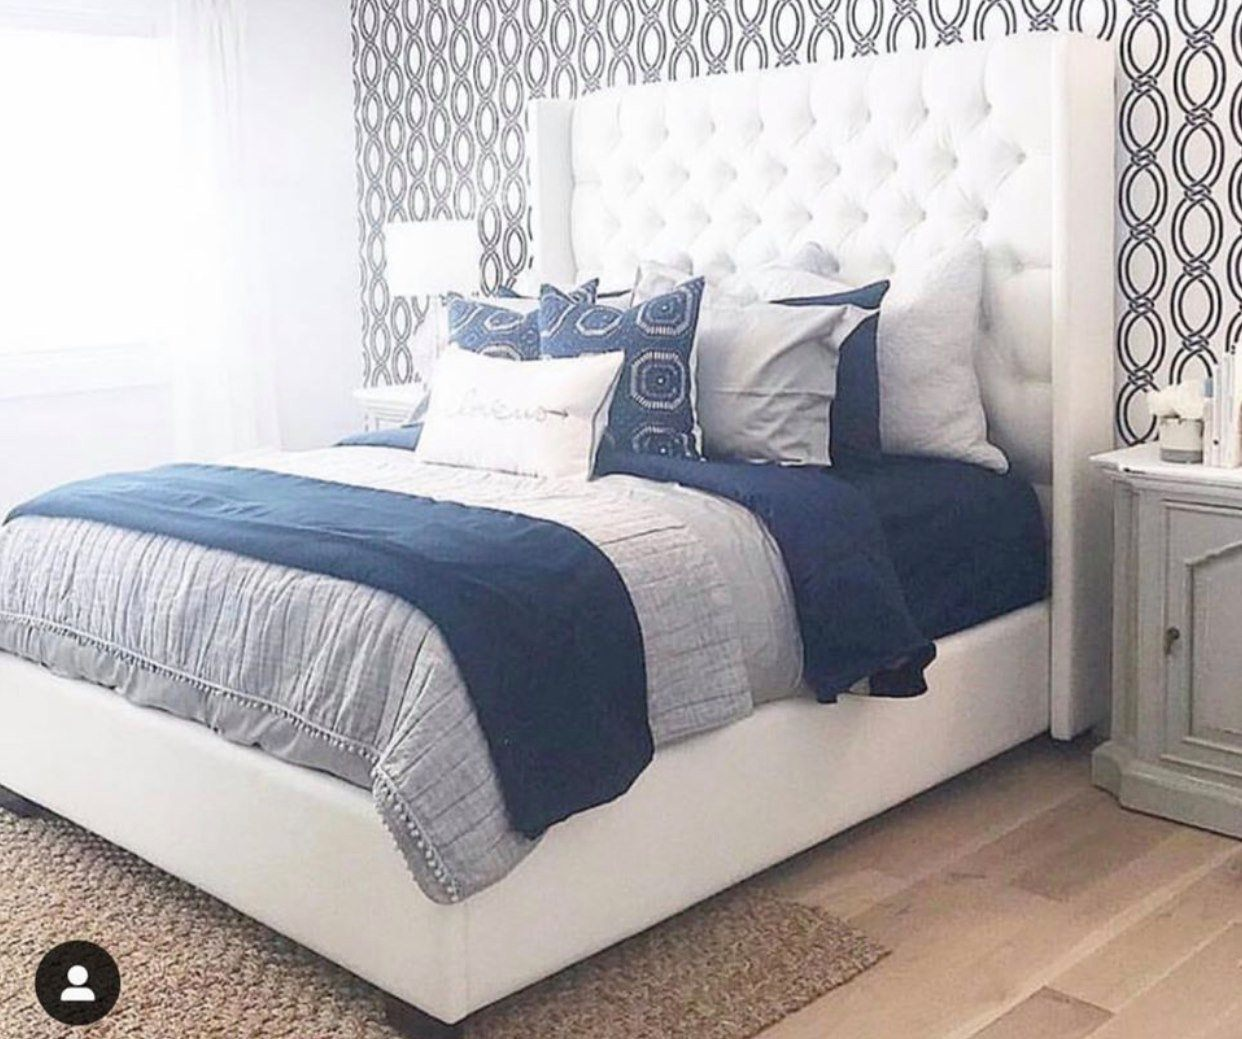 Custom Luxurious Tufted Bed Made In Canada Showhome Furniture Calgary S Furniture Store